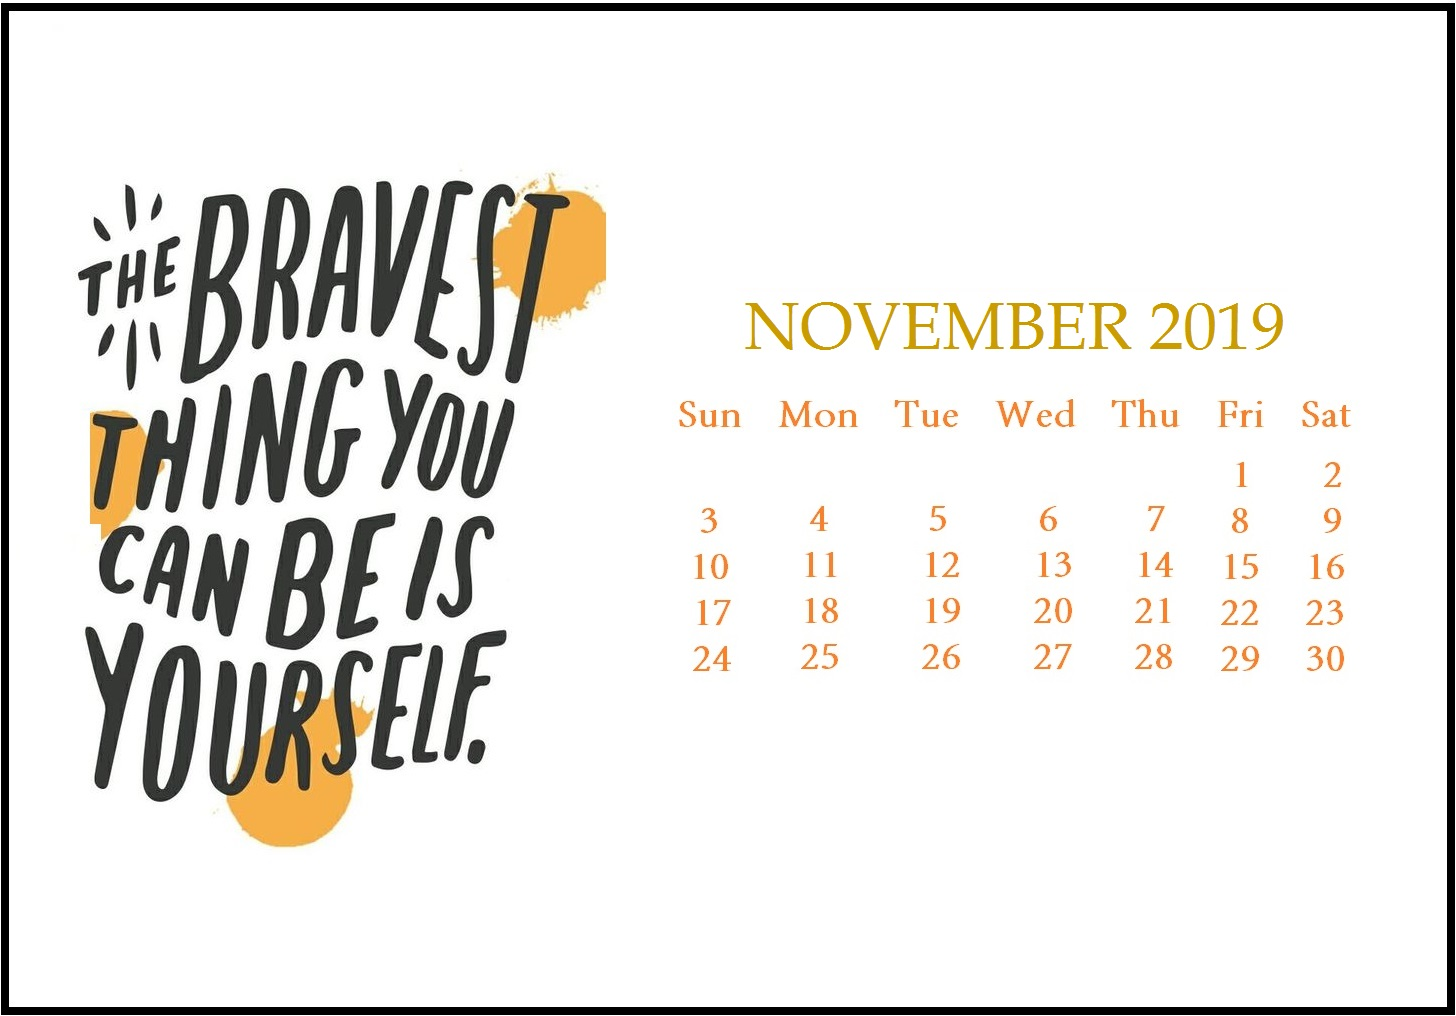 Decorative November 2019 Calendar Designs